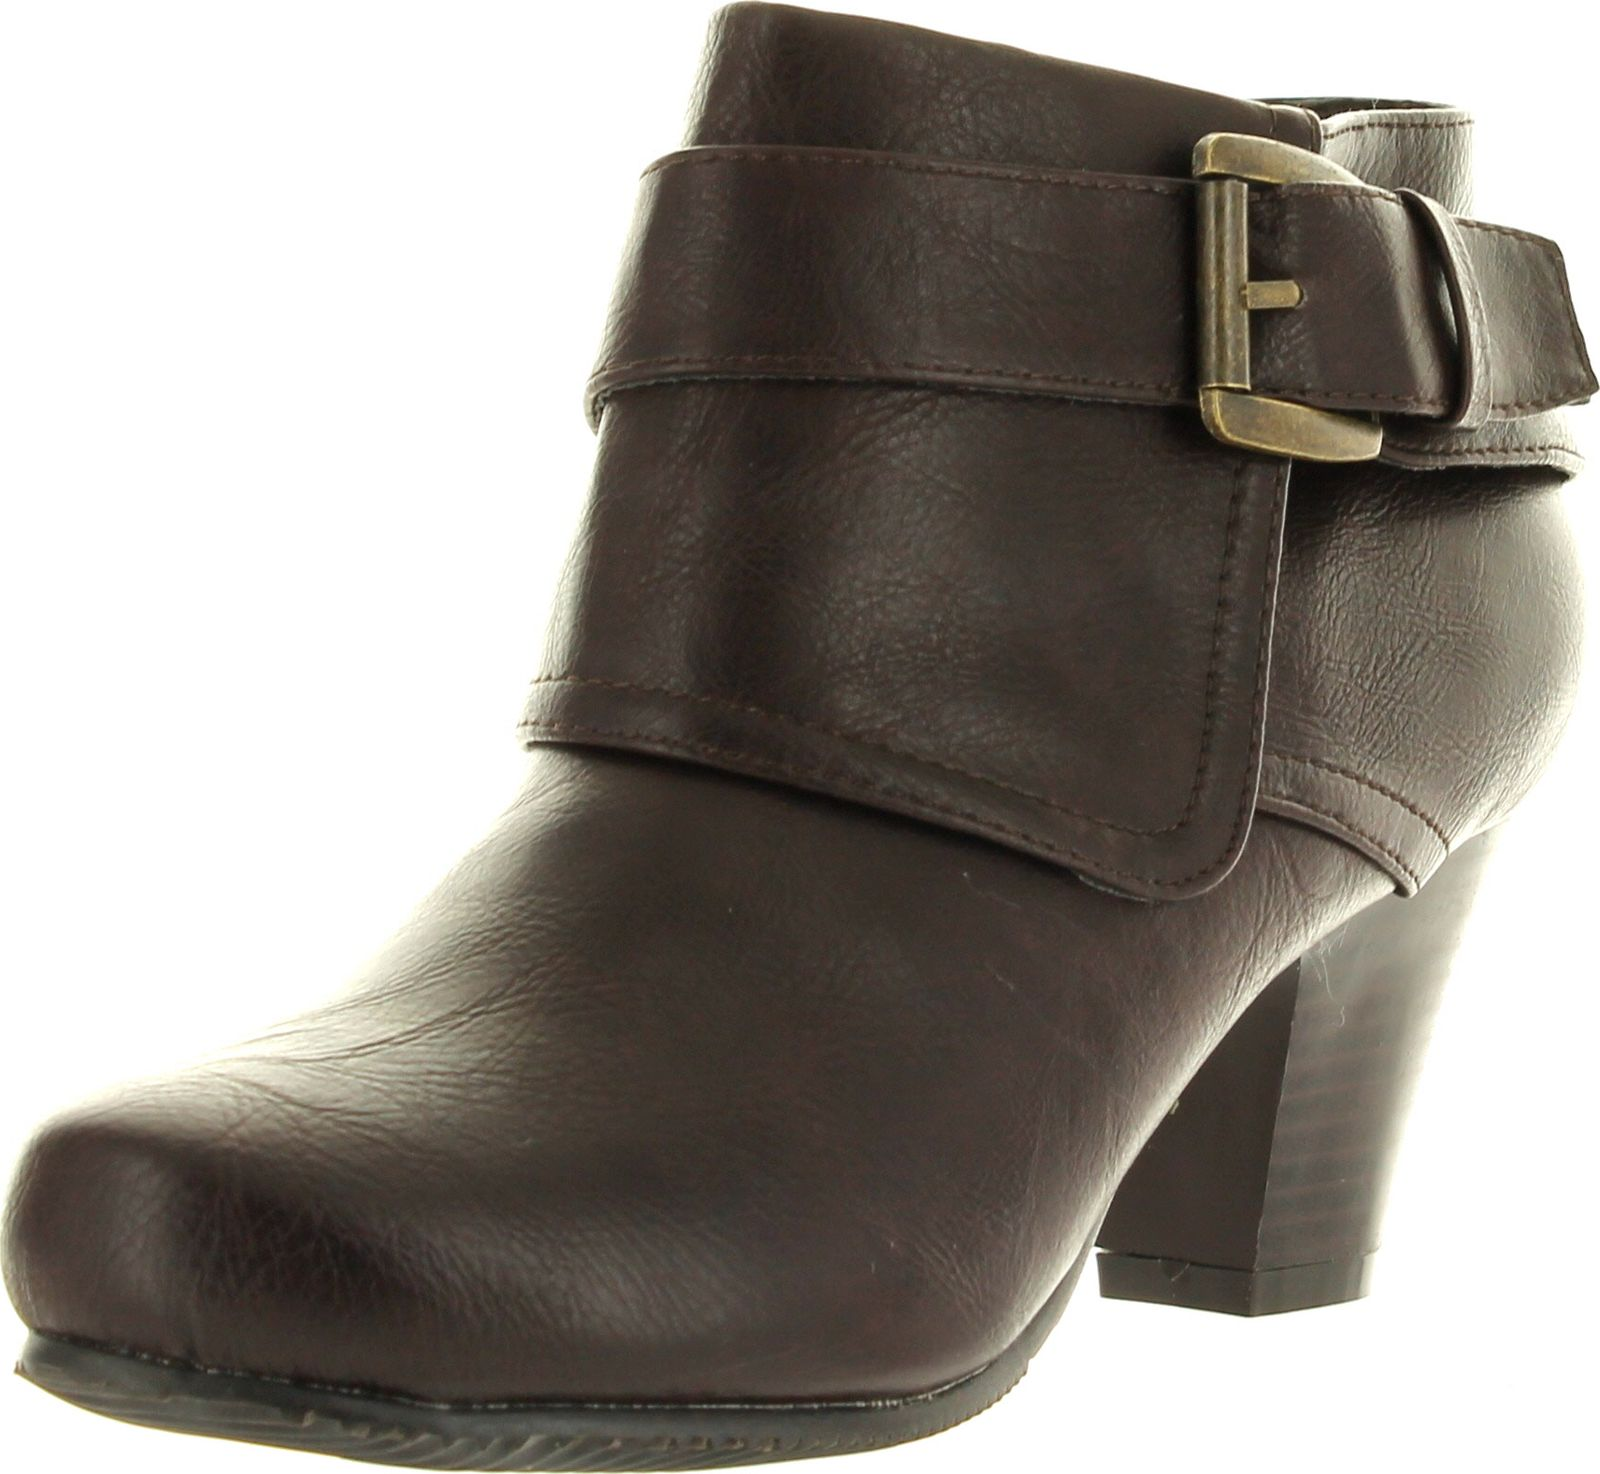 Dara-1 Womens Buckle Ankle Strap Side Zip Chunky Ankle Booties